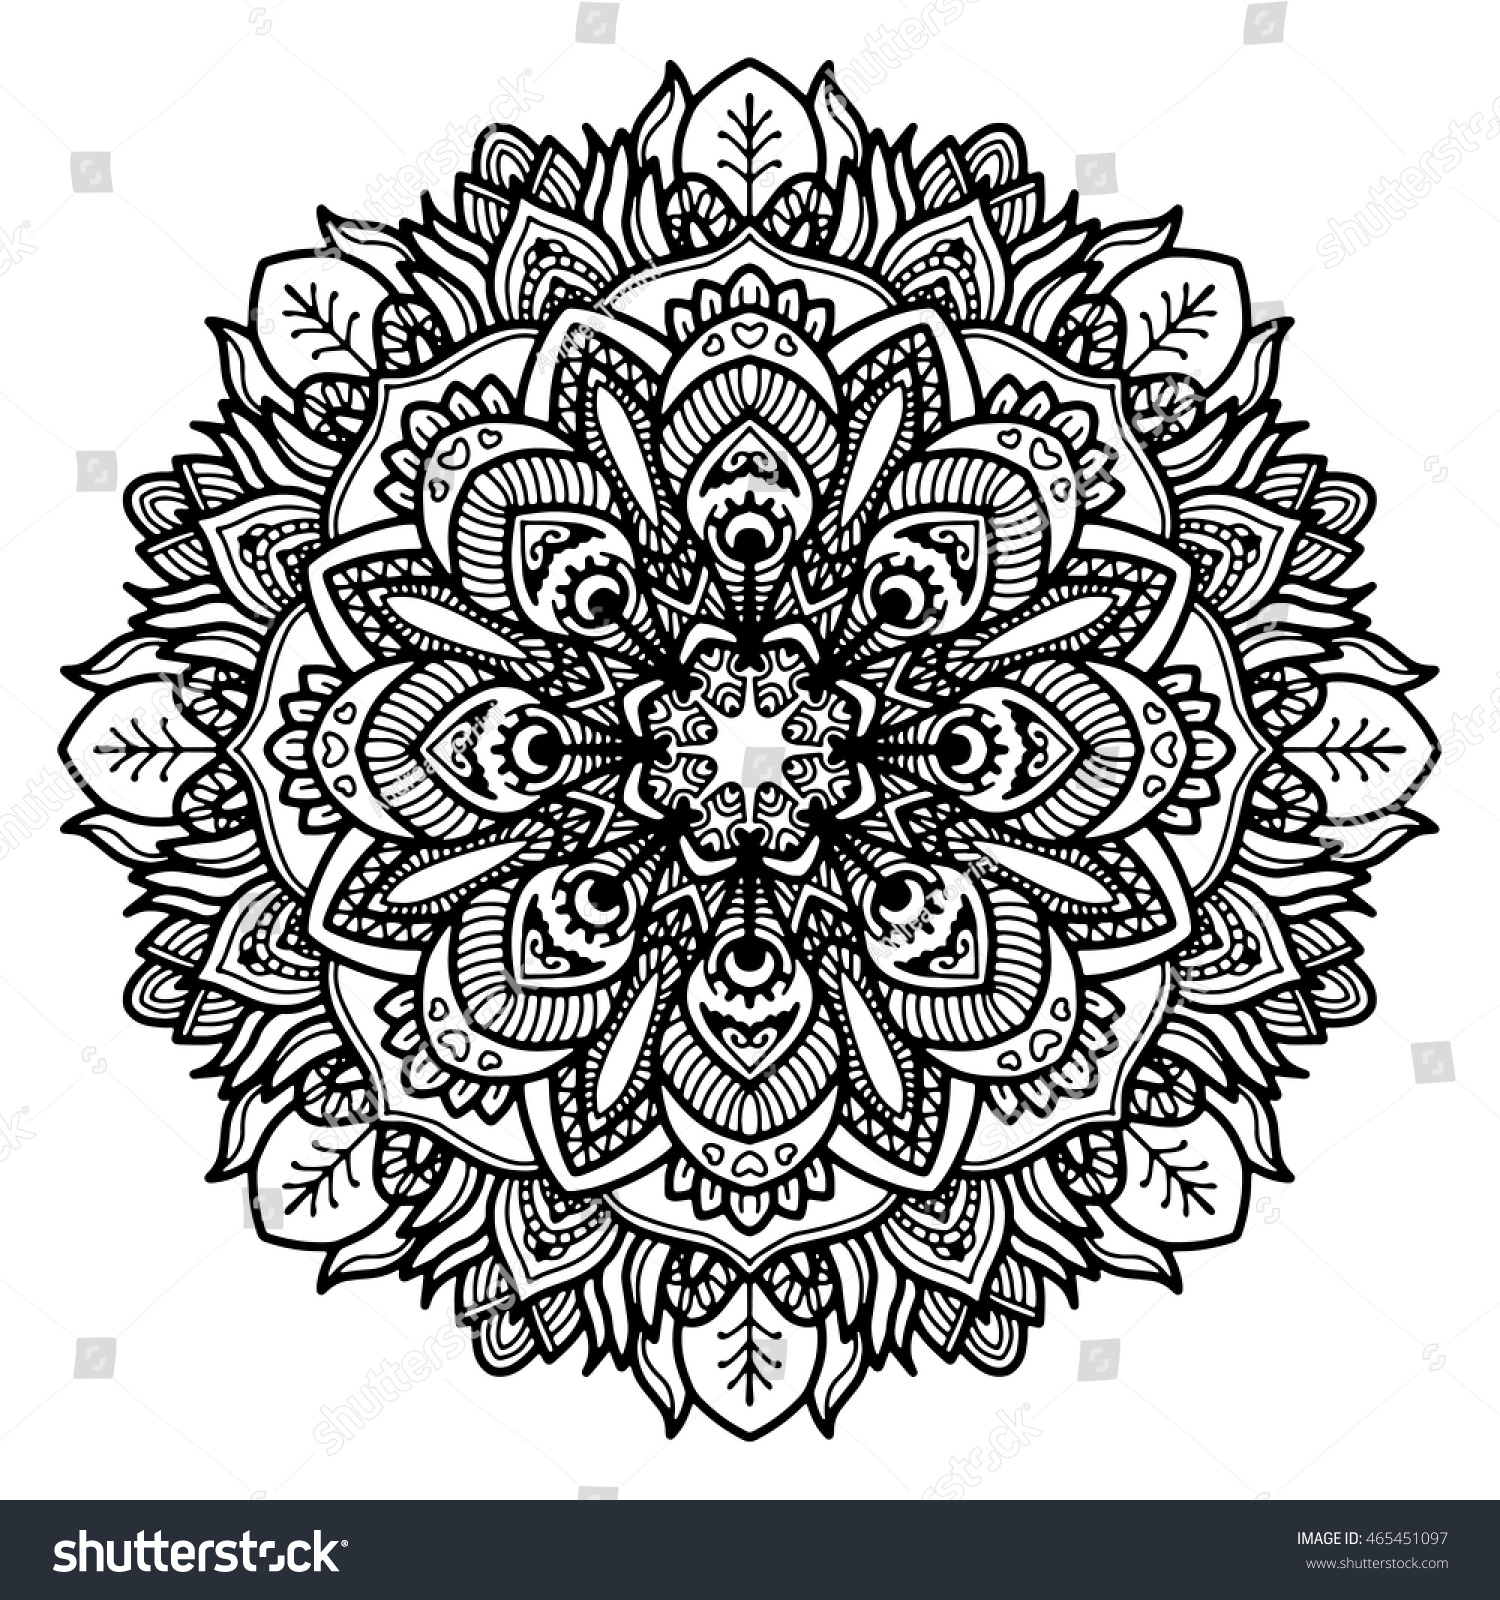 circle abstract coloring pages - photo#35